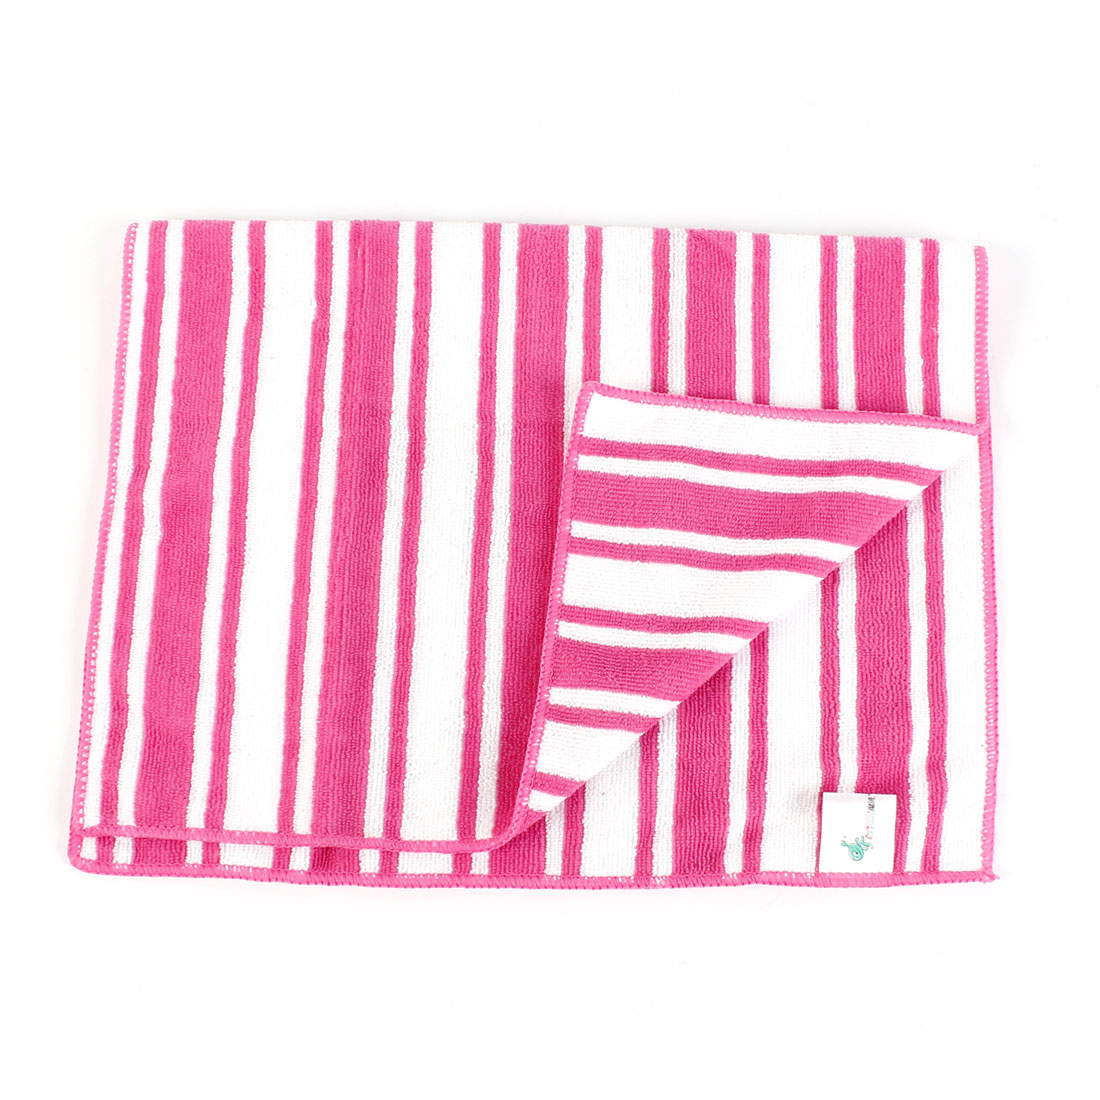 60x42cm Red White Rectangle Microfiber Stripe Pattern Polishing Towel Cleaning Cloth for Car